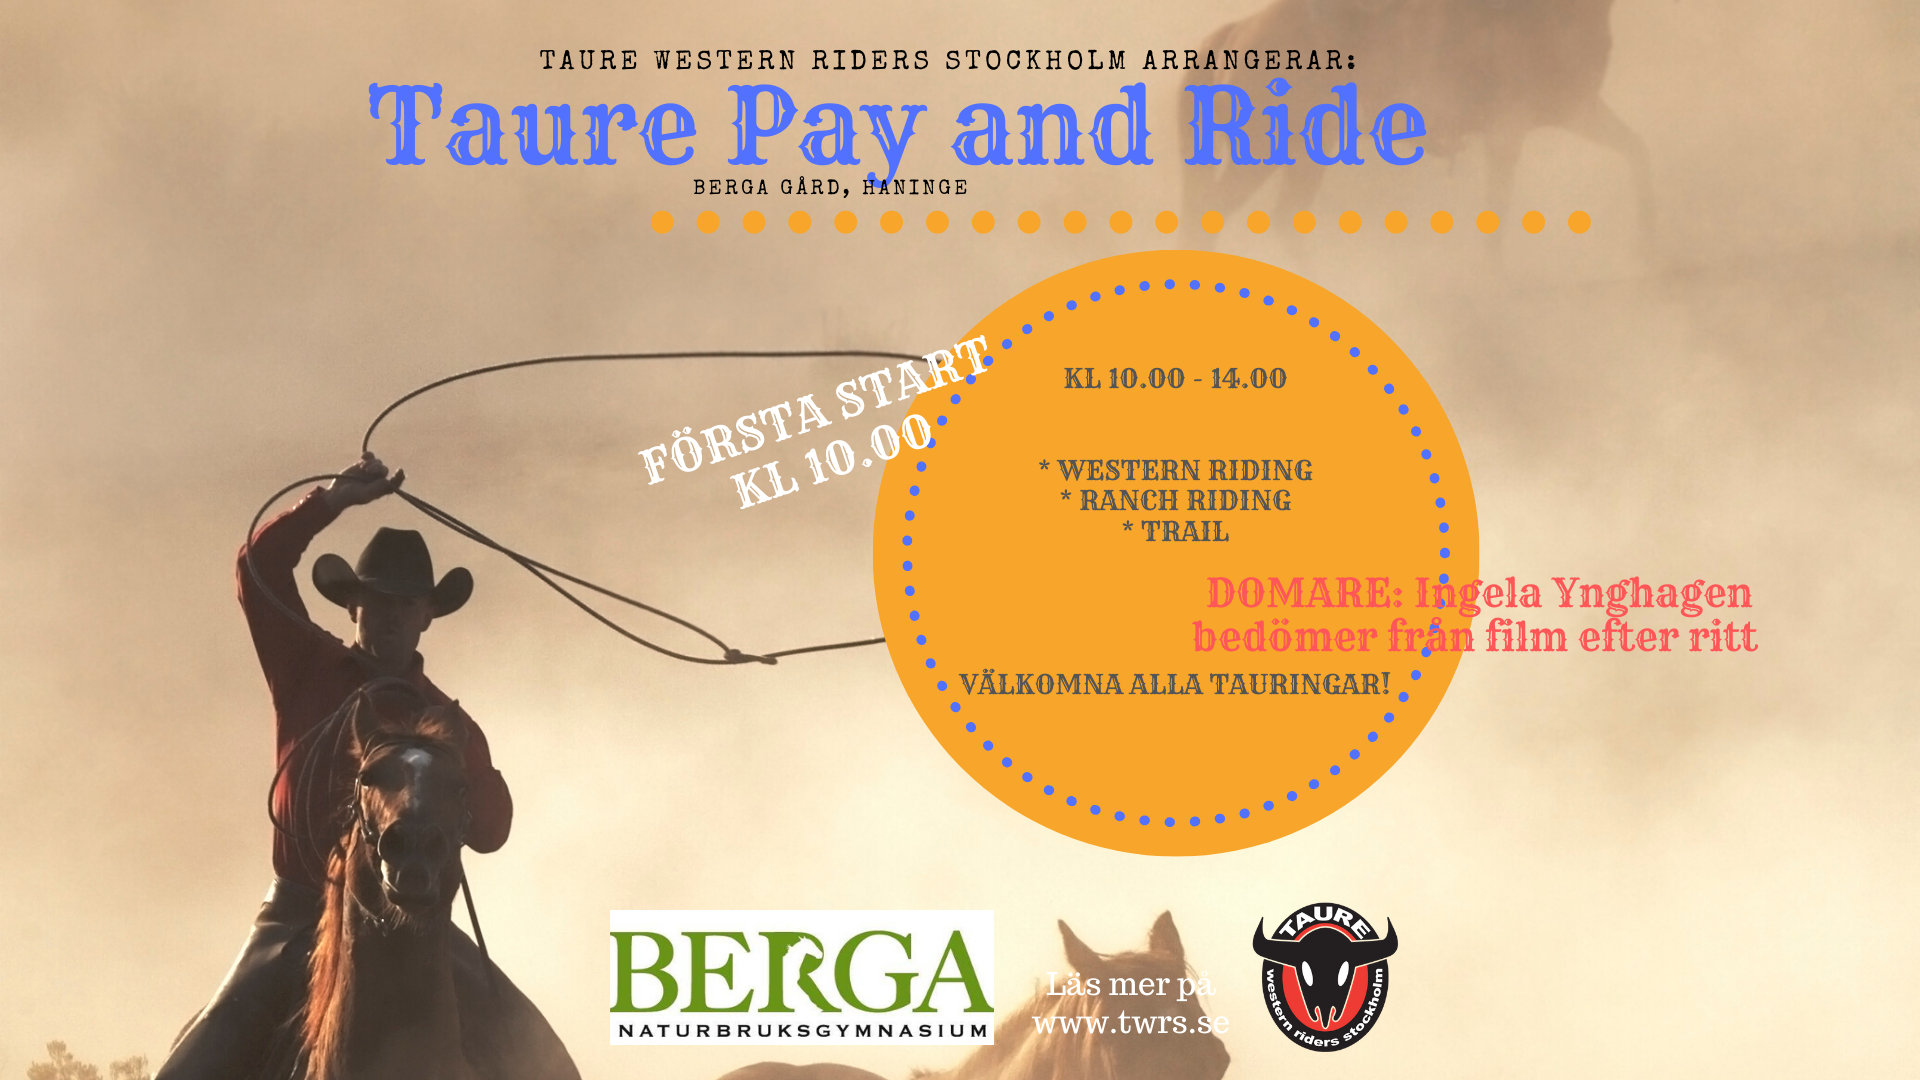 Taure Pay & Ride 2020